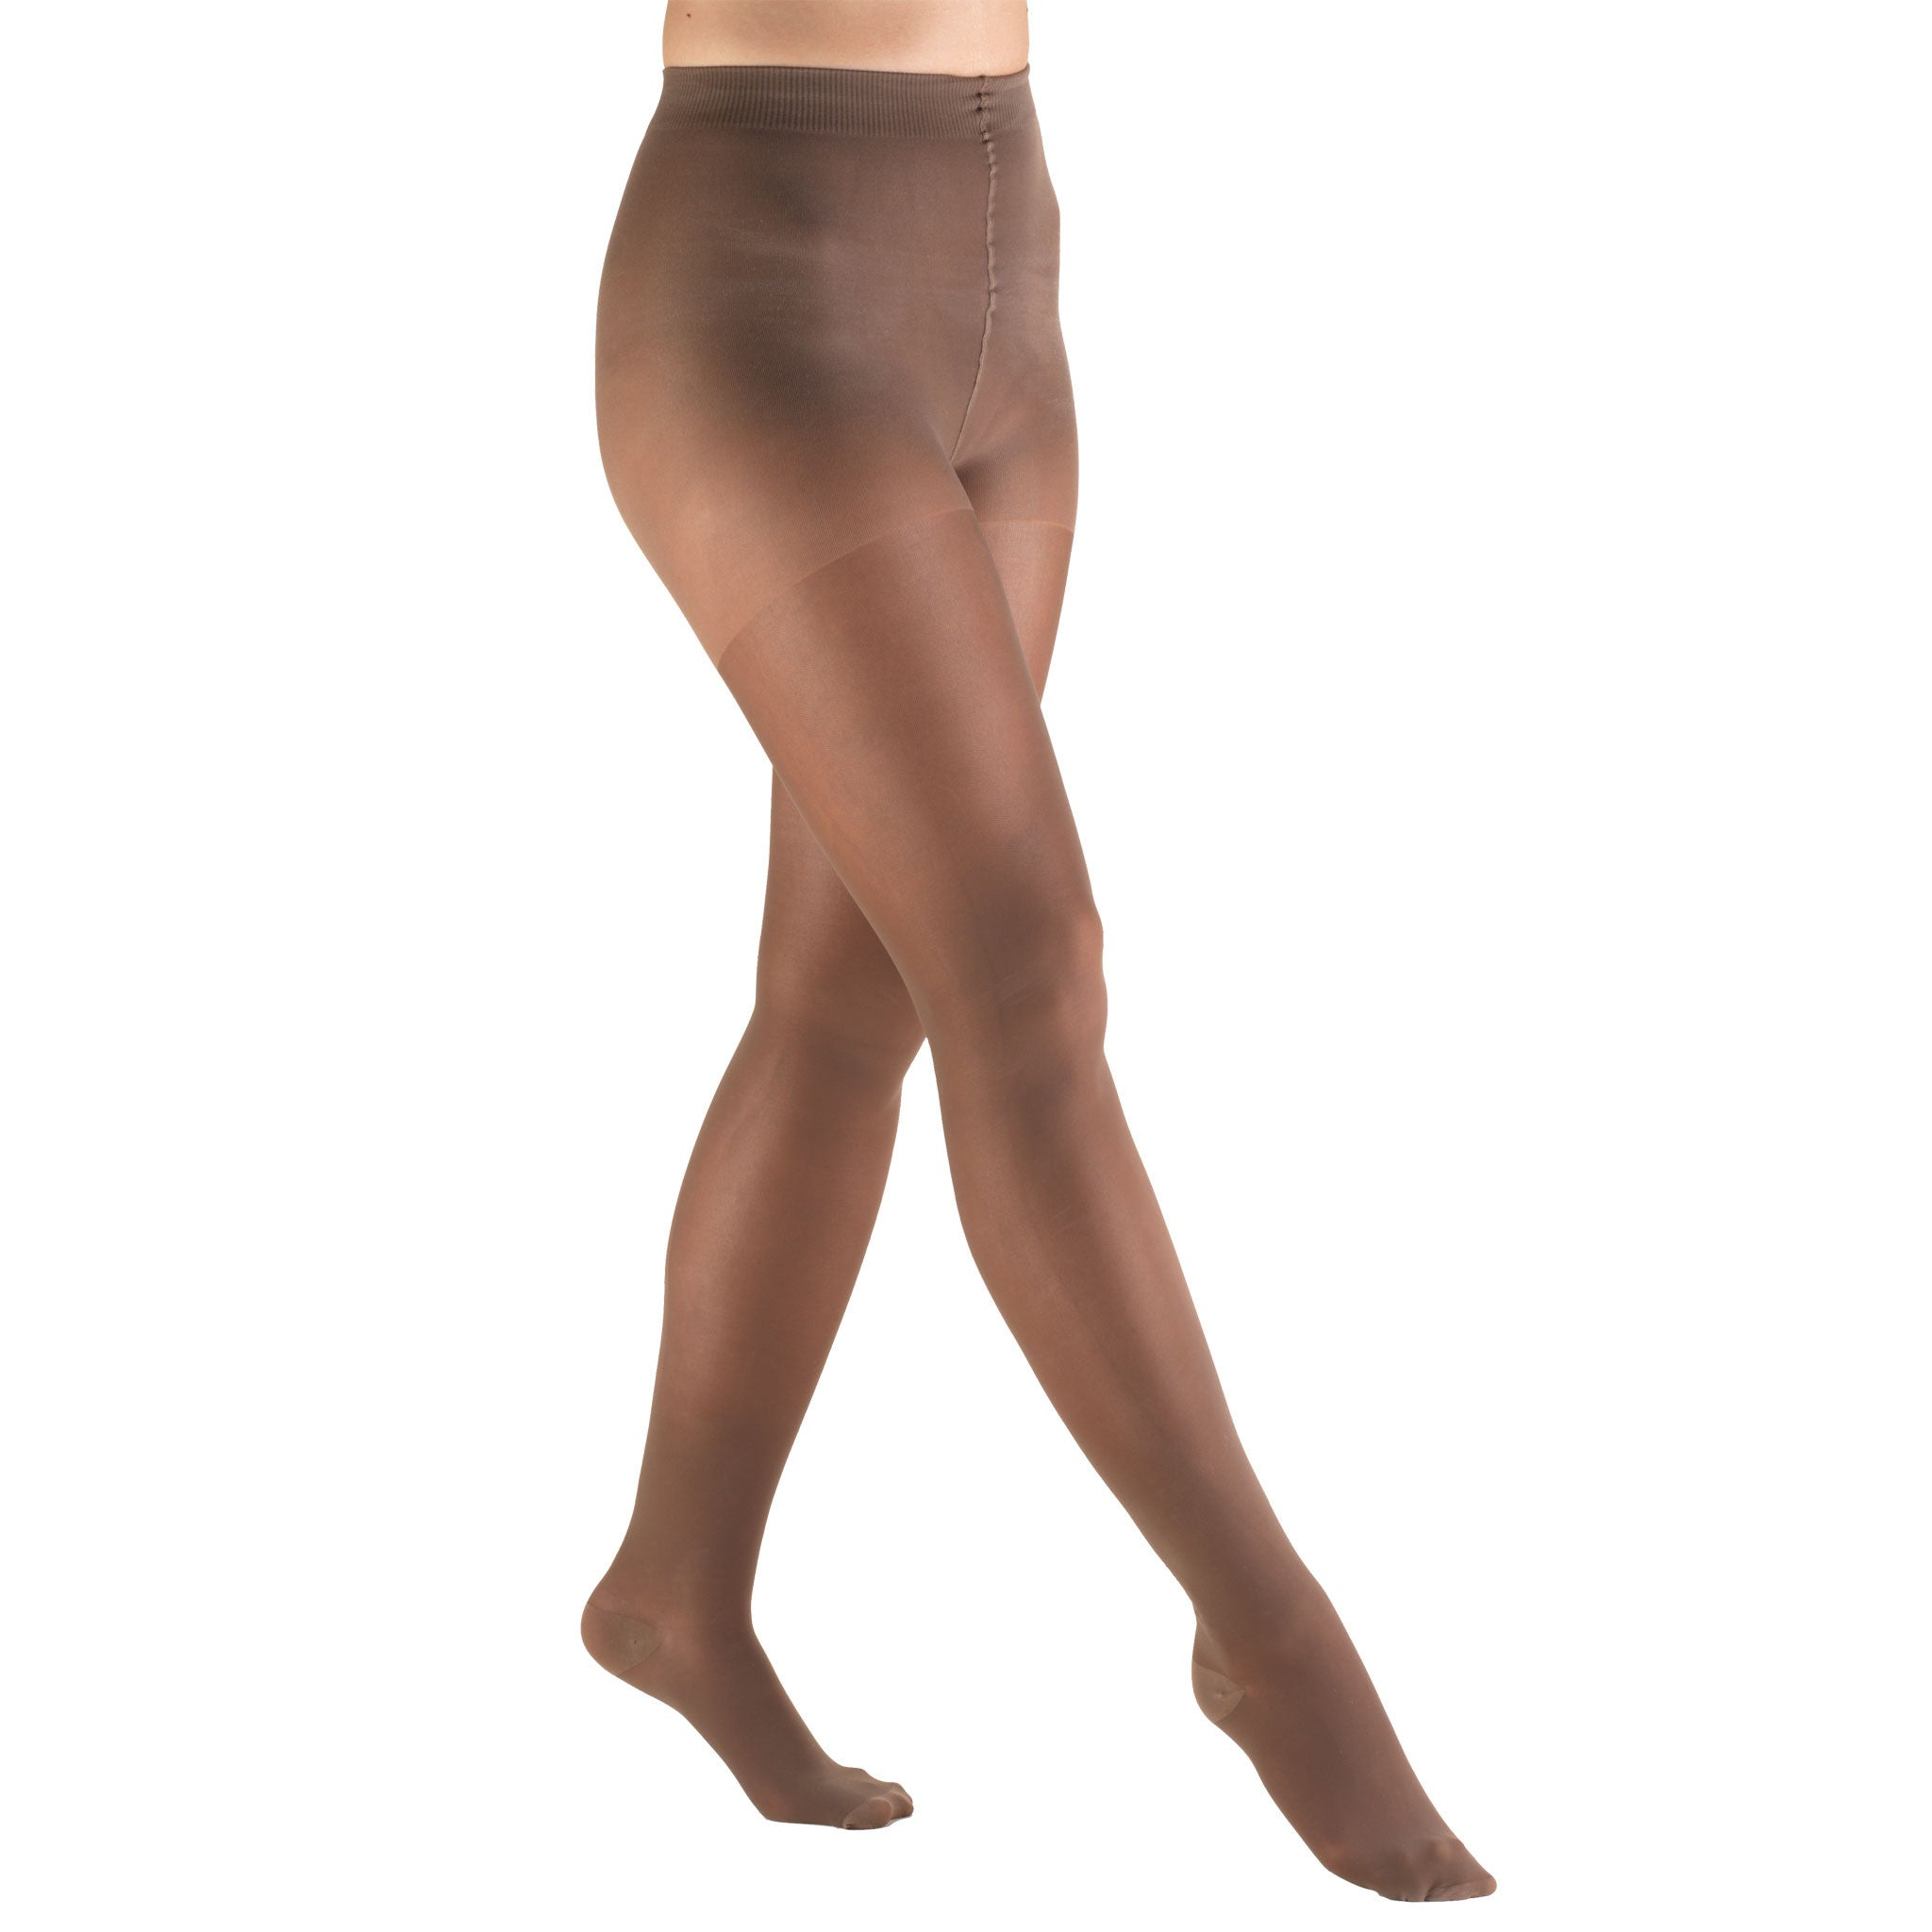 CLOSED TOE TAUPE TRUSHEER PANTYHOSE